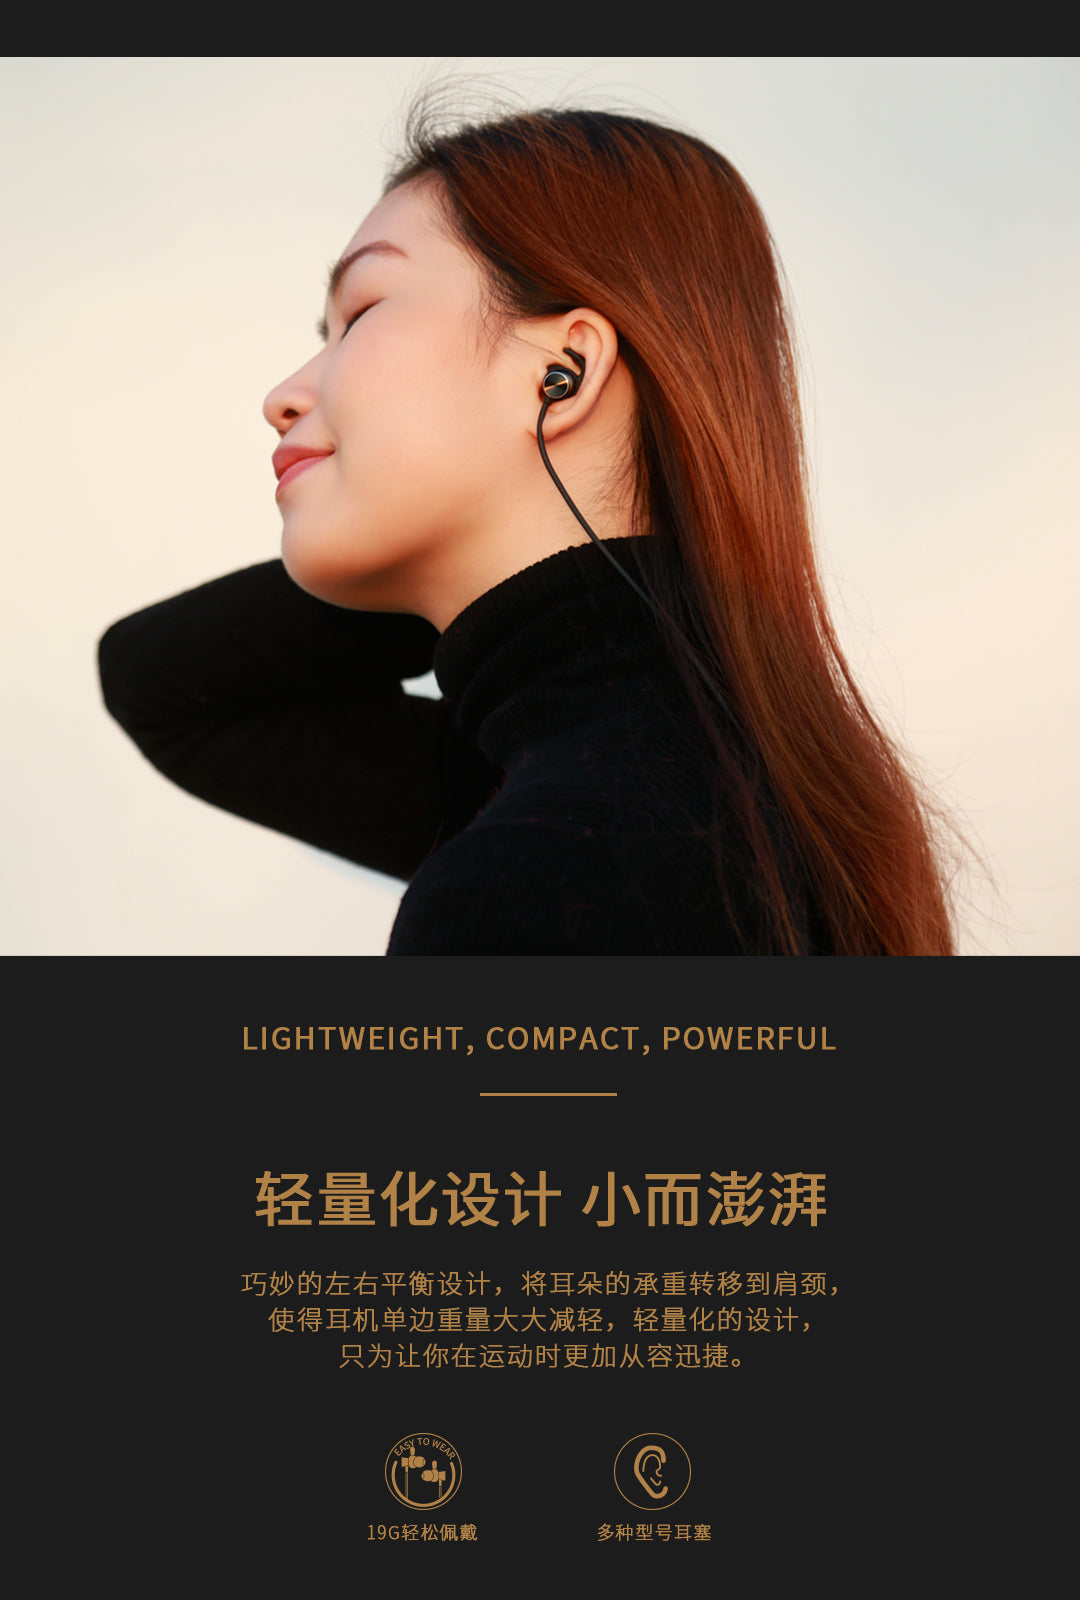 BD290 Sport IN-EAR HeadPhones - i-s-mart.com | No.1 Branded Online Shop in Cambodia